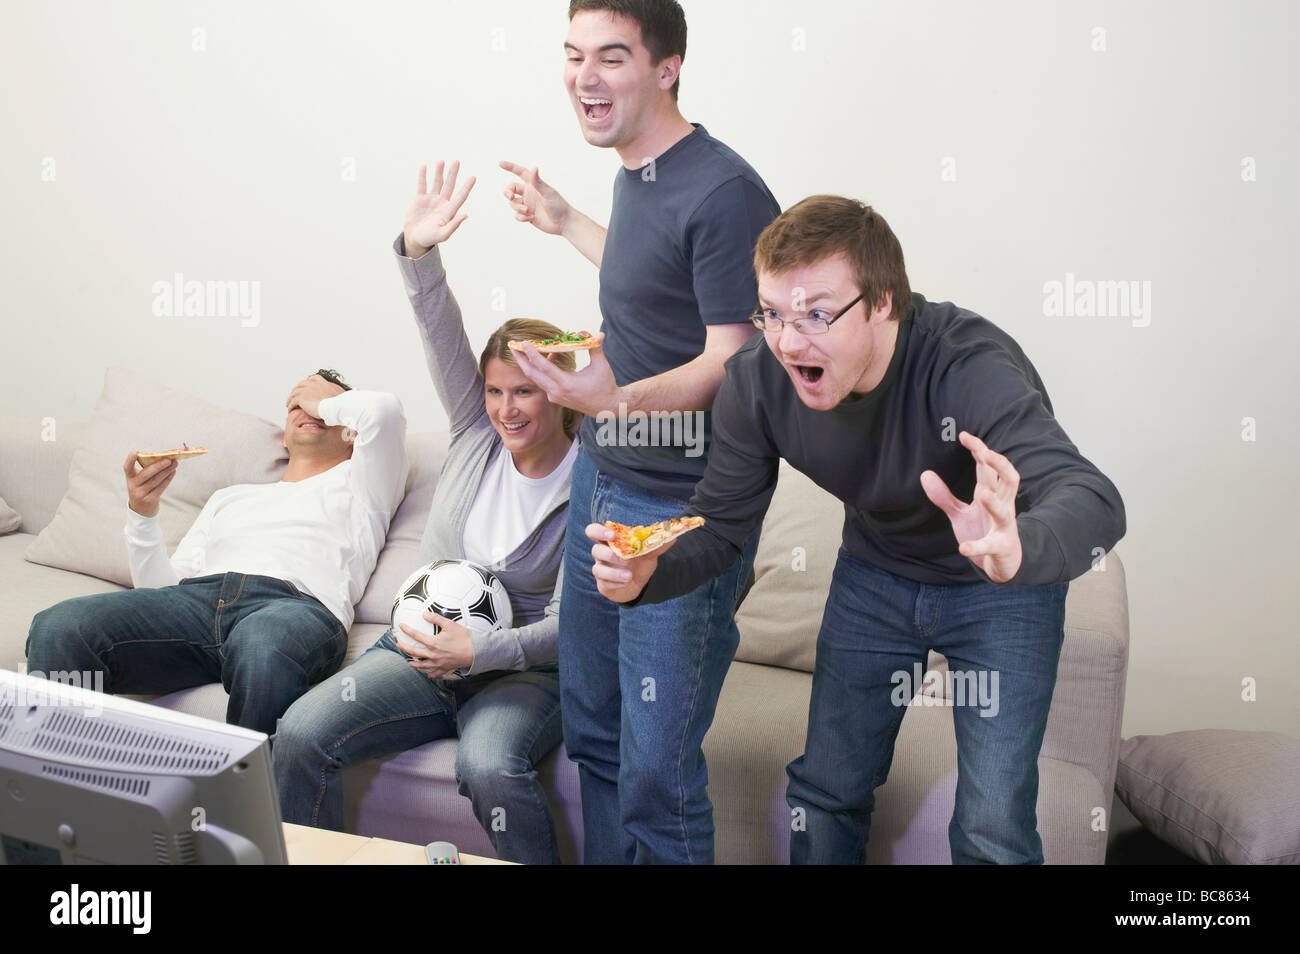 Cheering friends in front of TV with pizza and football - - Stock Image